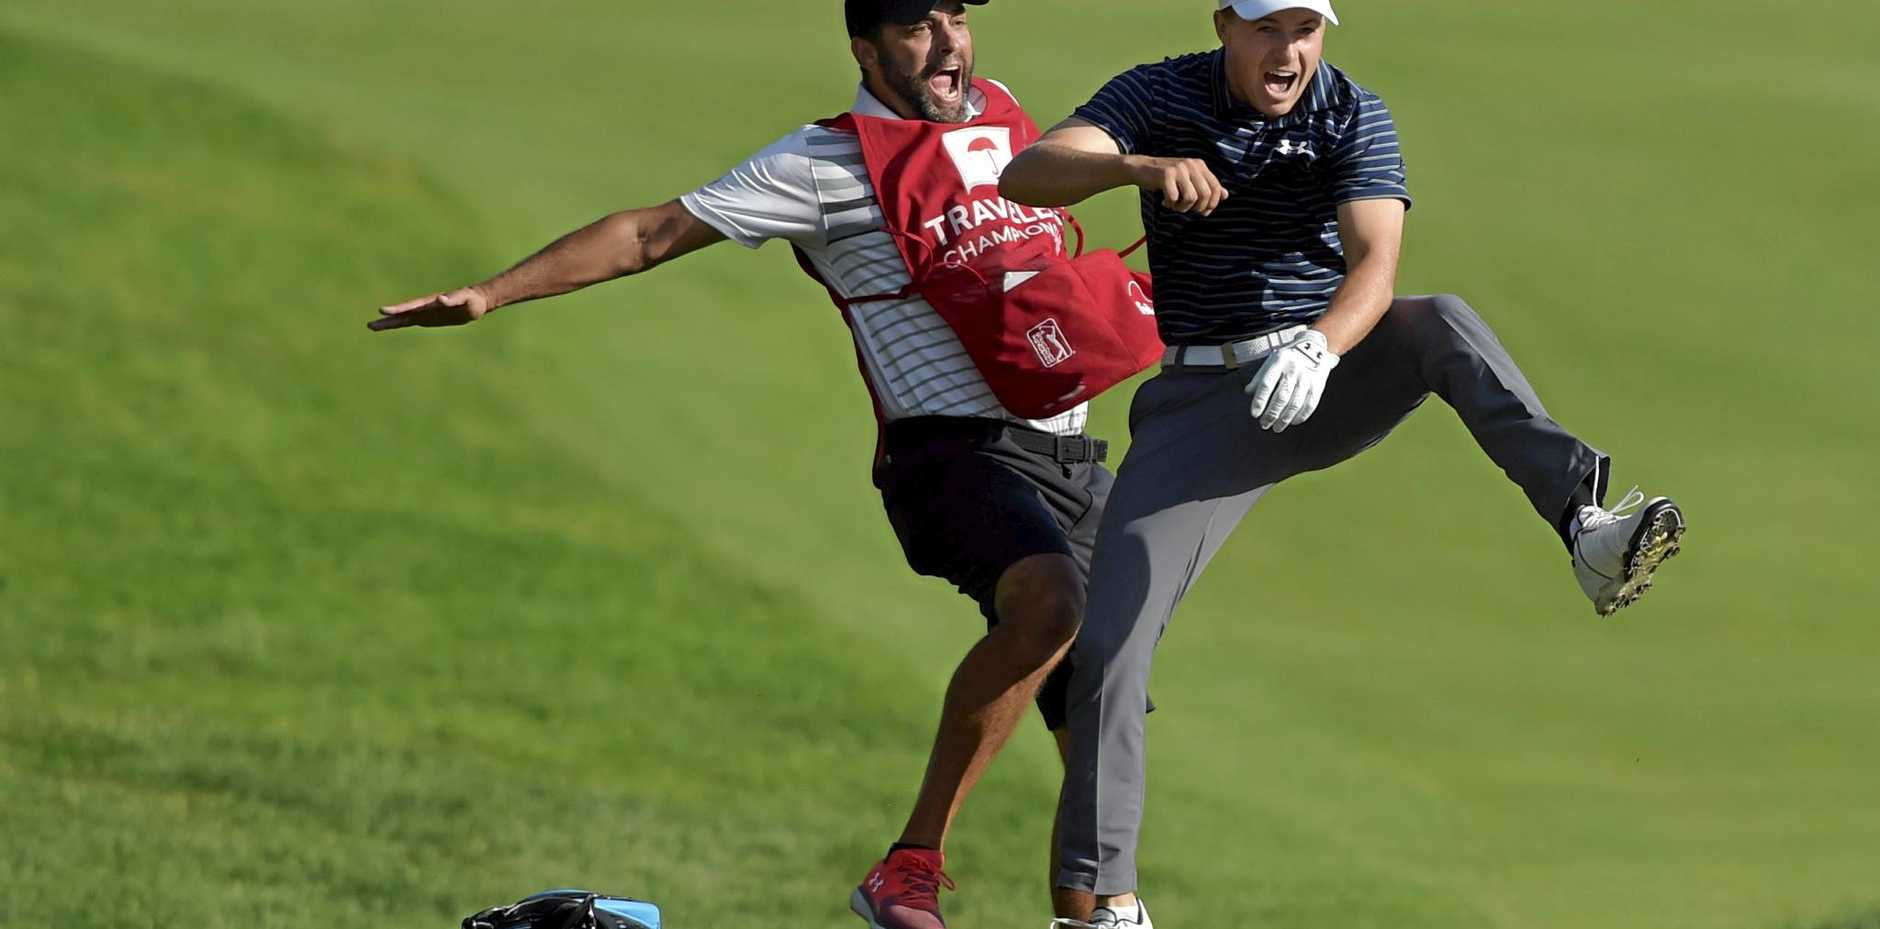 TOP SHOT: Jordan Spieth (right) celebrates with caddie Michael Greller after Spieth holed a bunker shot on a play-off hole to win the Travelers Championship.